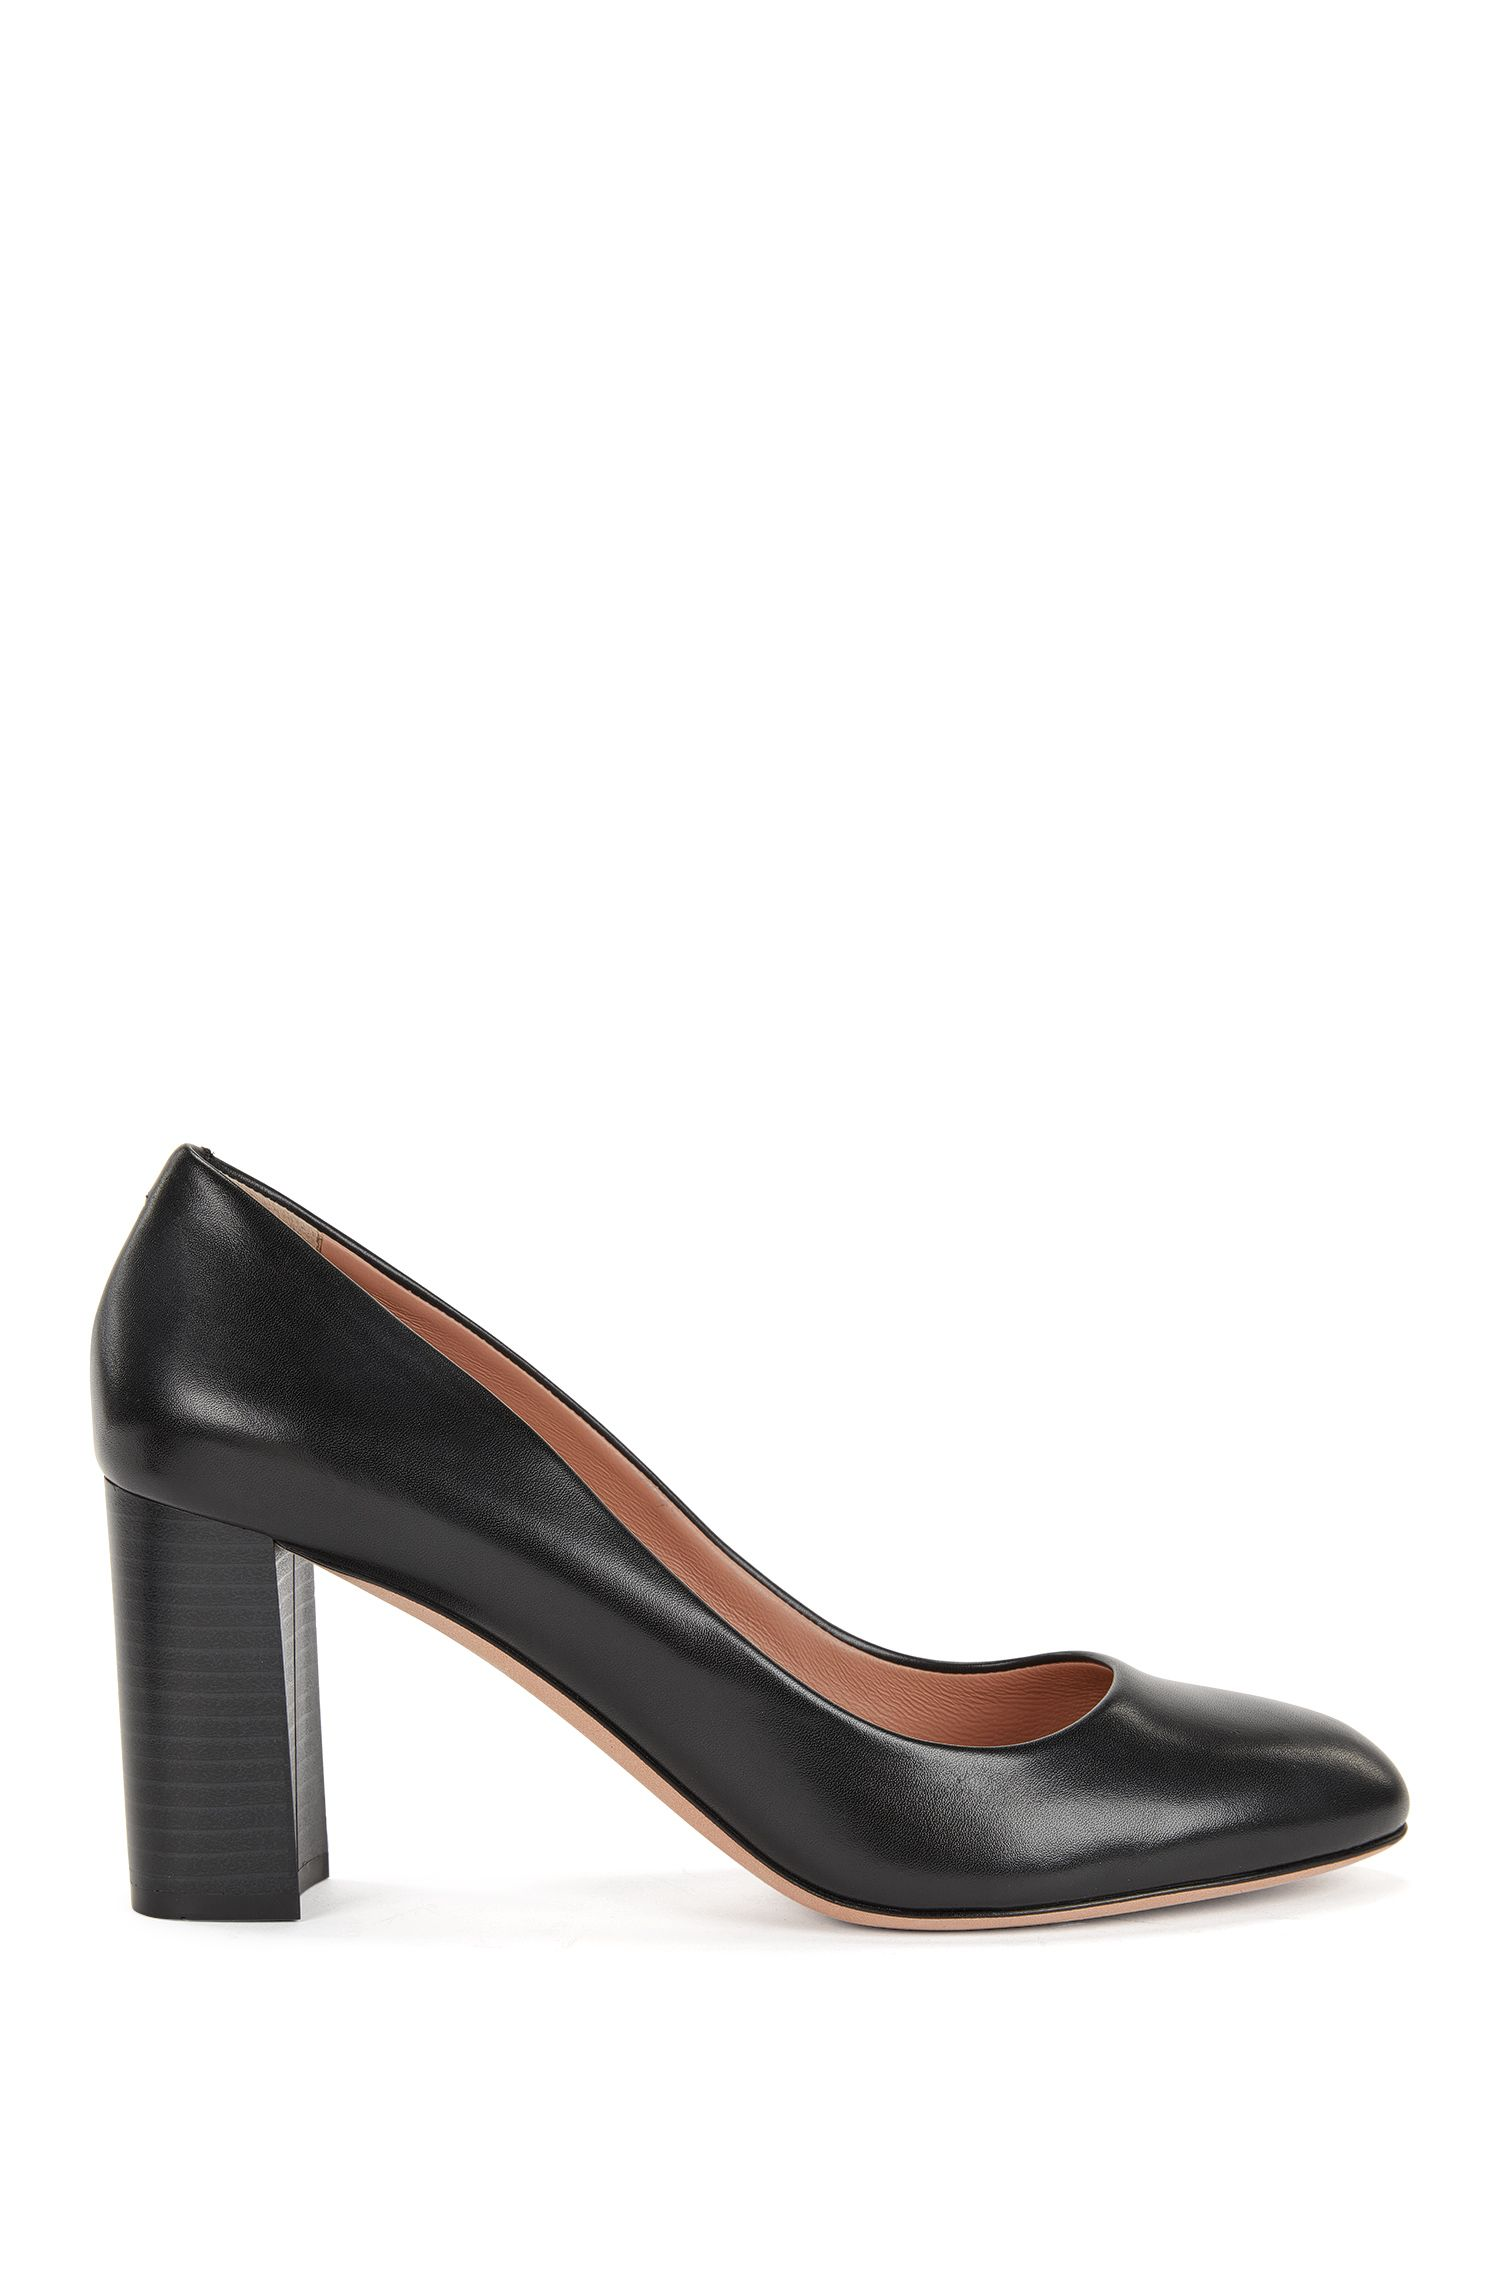 Leather Mid-Heel Pump | Farah